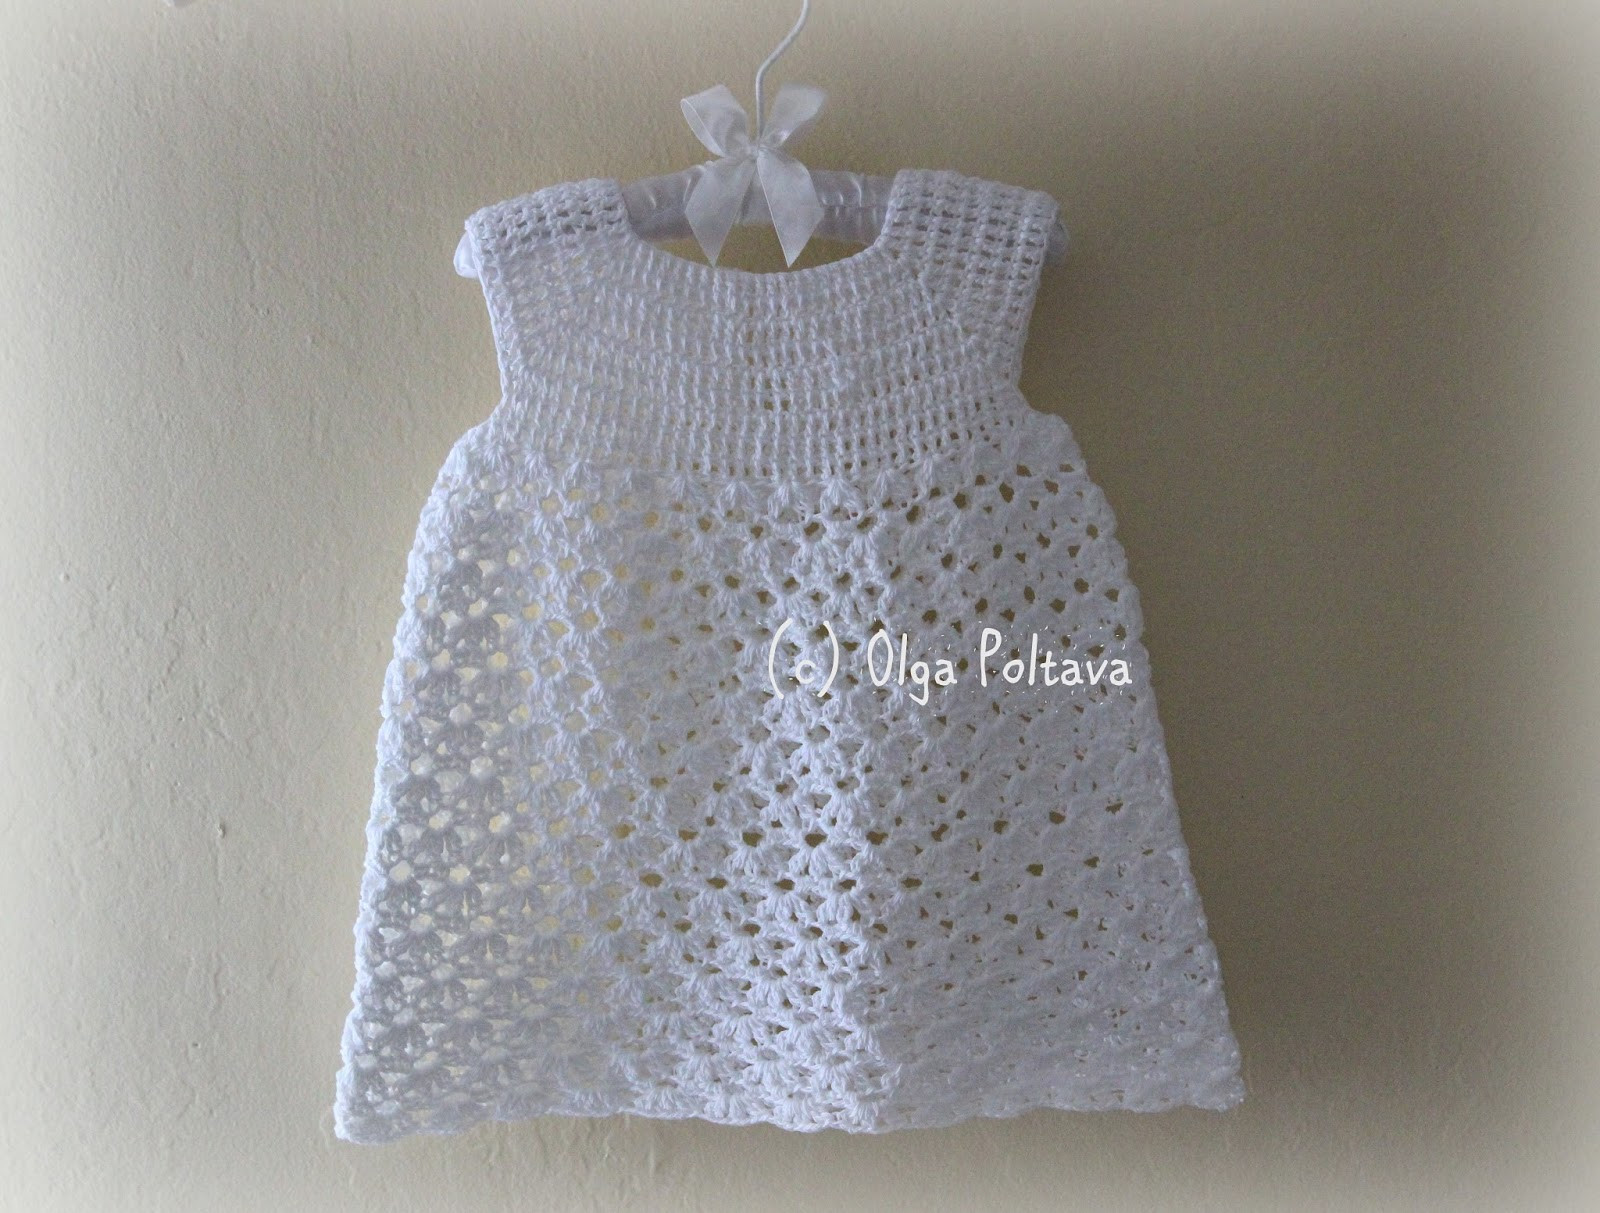 Crochet Baby Dress Patterns New Lacy Crochet Two New Patterns Baby Dress and Girls Hat Of Awesome 42 Models Crochet Baby Dress Patterns